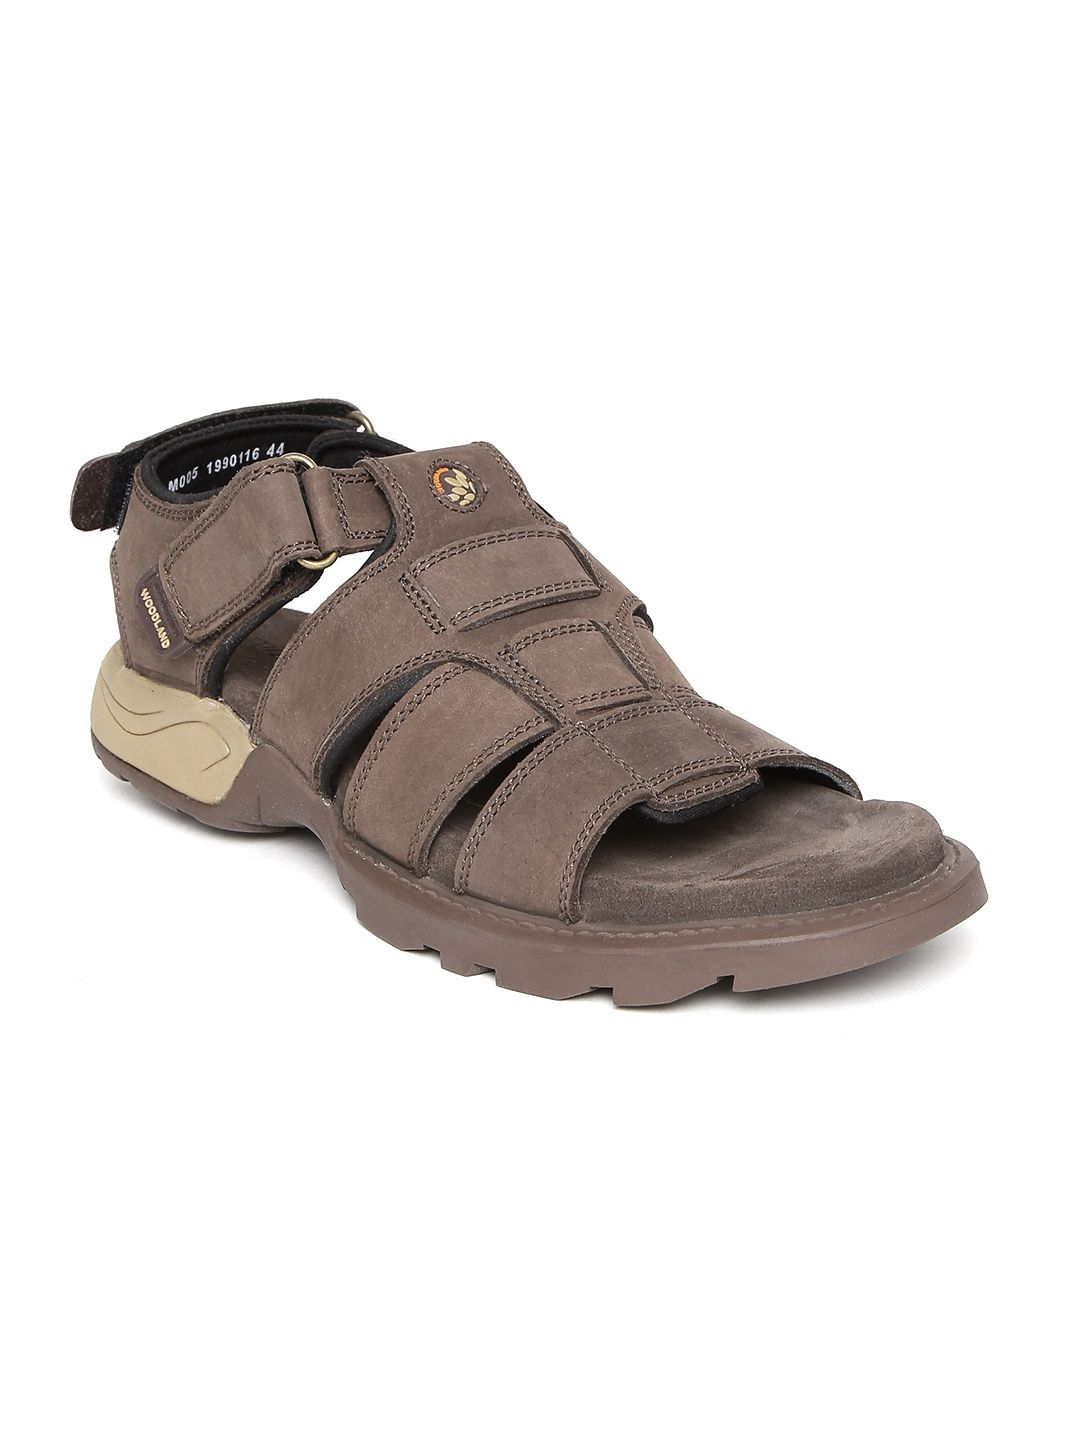 8b57ff5bc228f Woodland Brown Floater Sandals - Buy Woodland Brown Floater Sandals Online  at Best Prices in India on Snapdeal